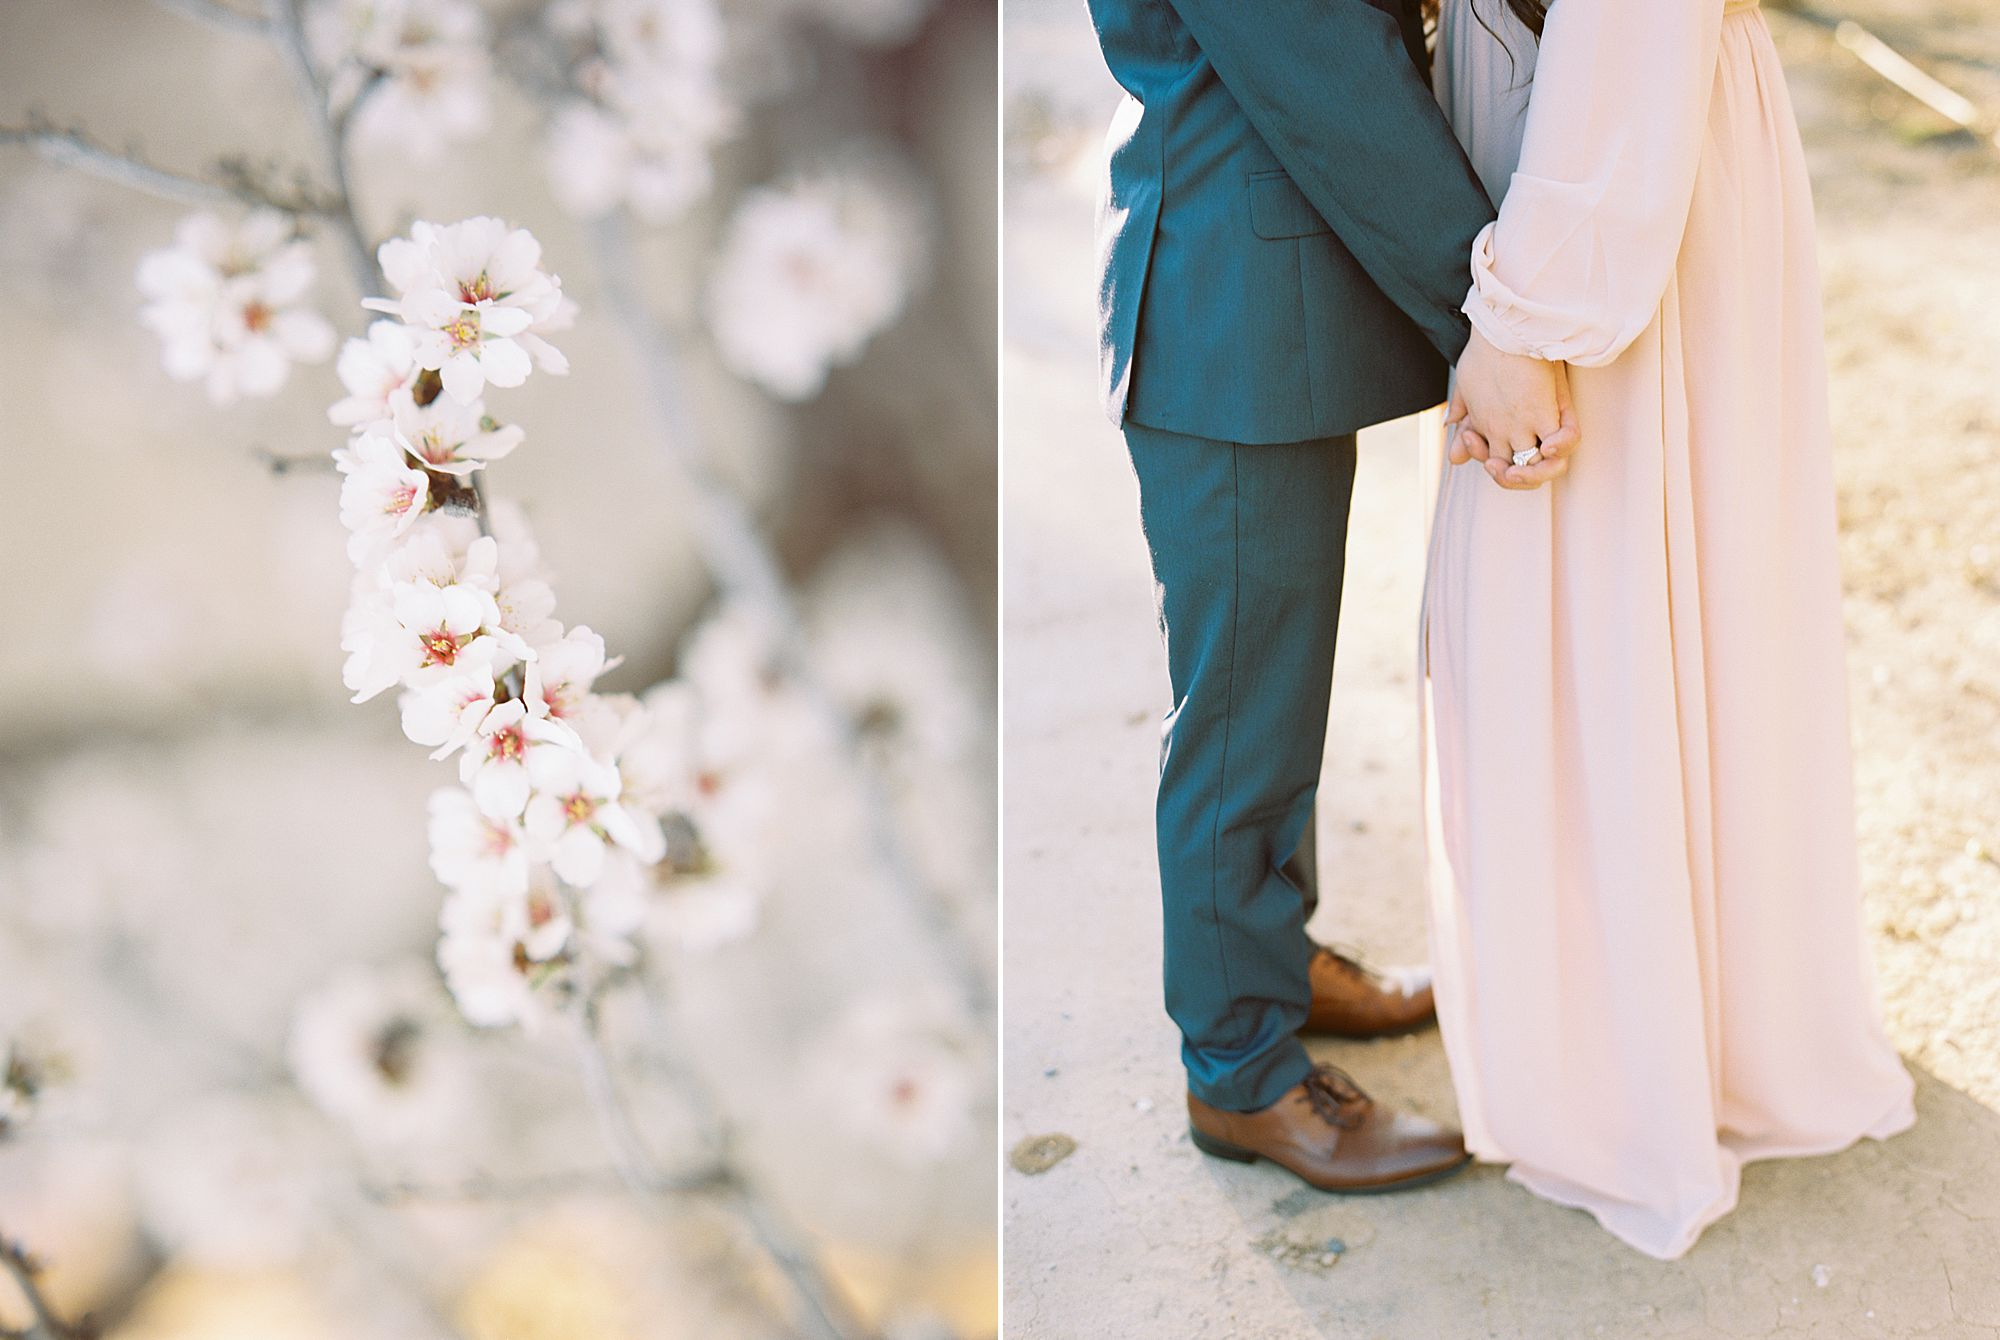 Almond Orchard Engagement Session - Caley and Tyler - Lone Oak Wedding - Ashley Baumgartner - Almond Blossom_0003.jpg